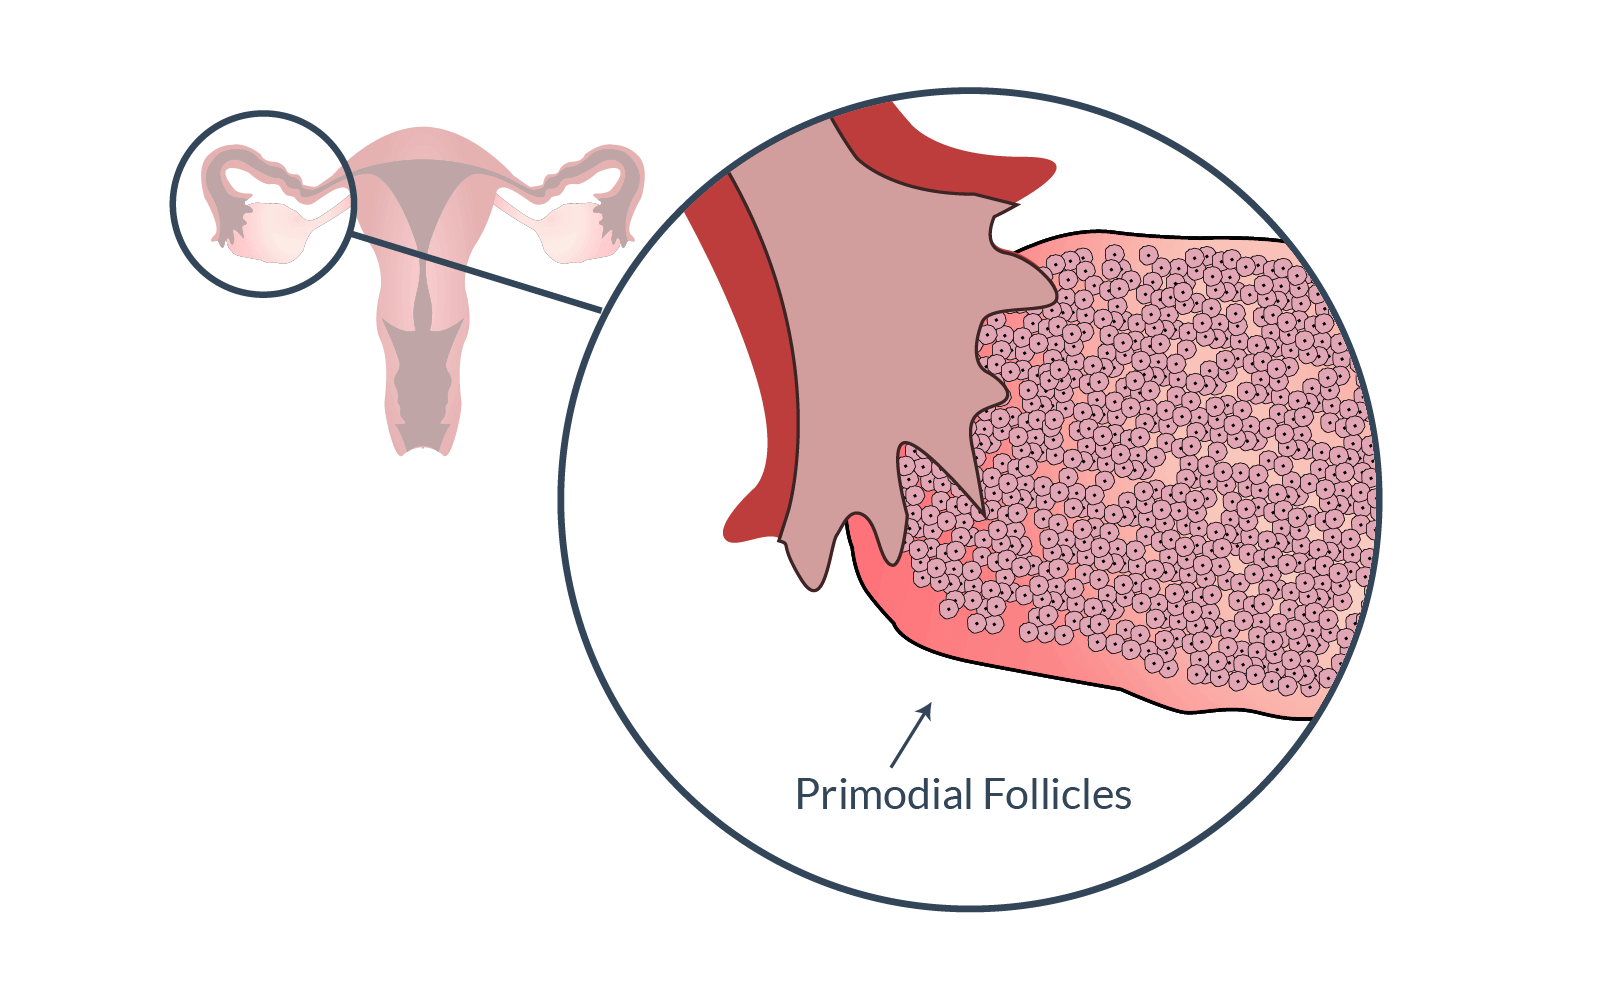 Primodial follicles